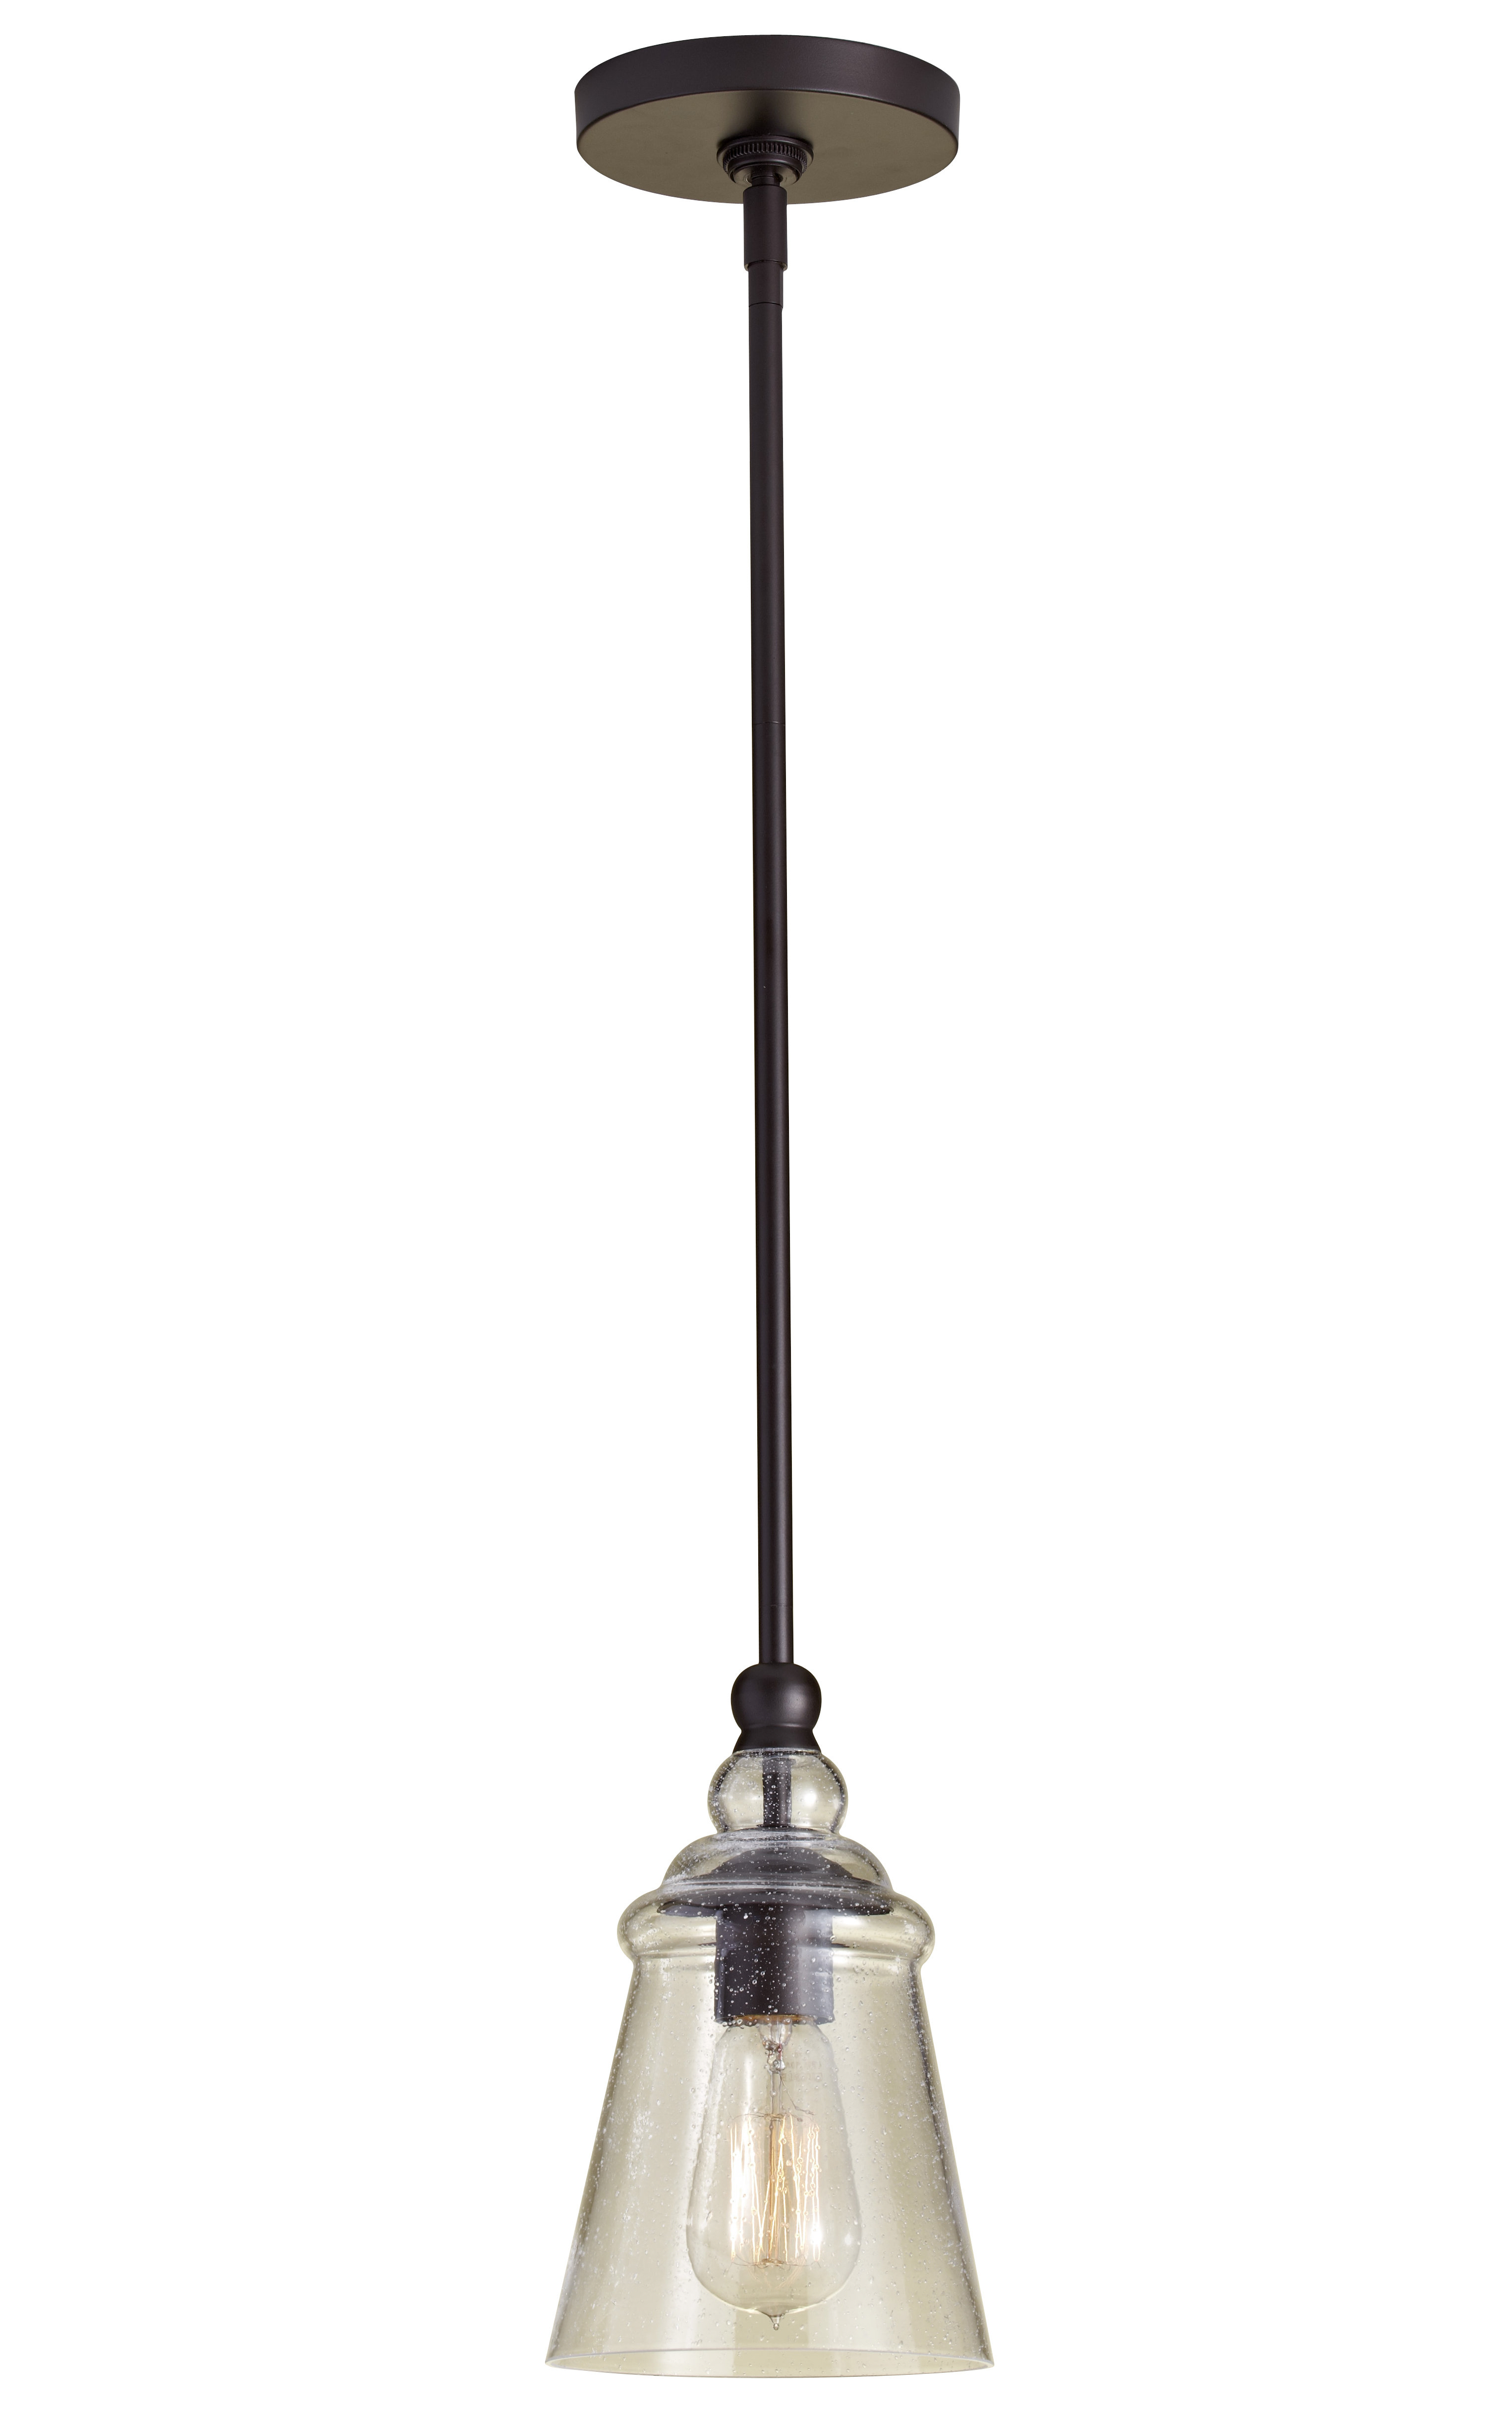 Most Recent Erico 1 Light Single Bell Pendants Pertaining To Sargent 1 Light Single Bell Pendant (View 4 of 20)